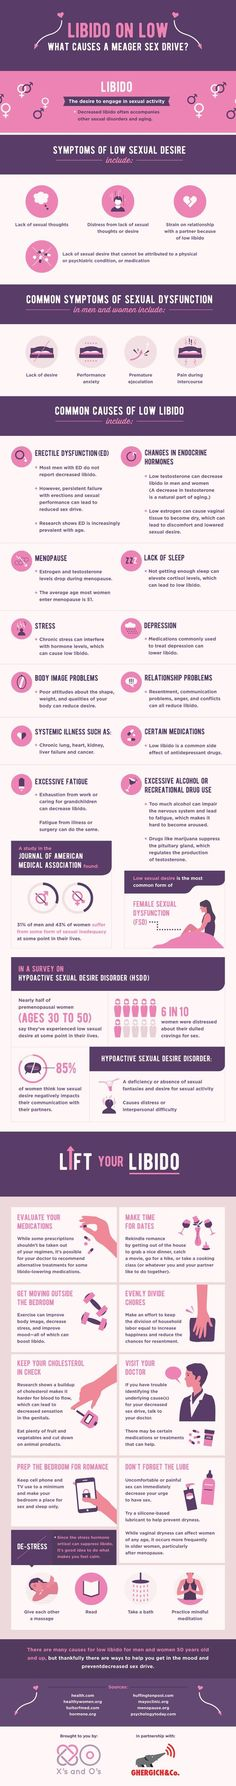 Low Libido: Here is Why Your Sex Drive Isnt What It Used To Be #Infographic